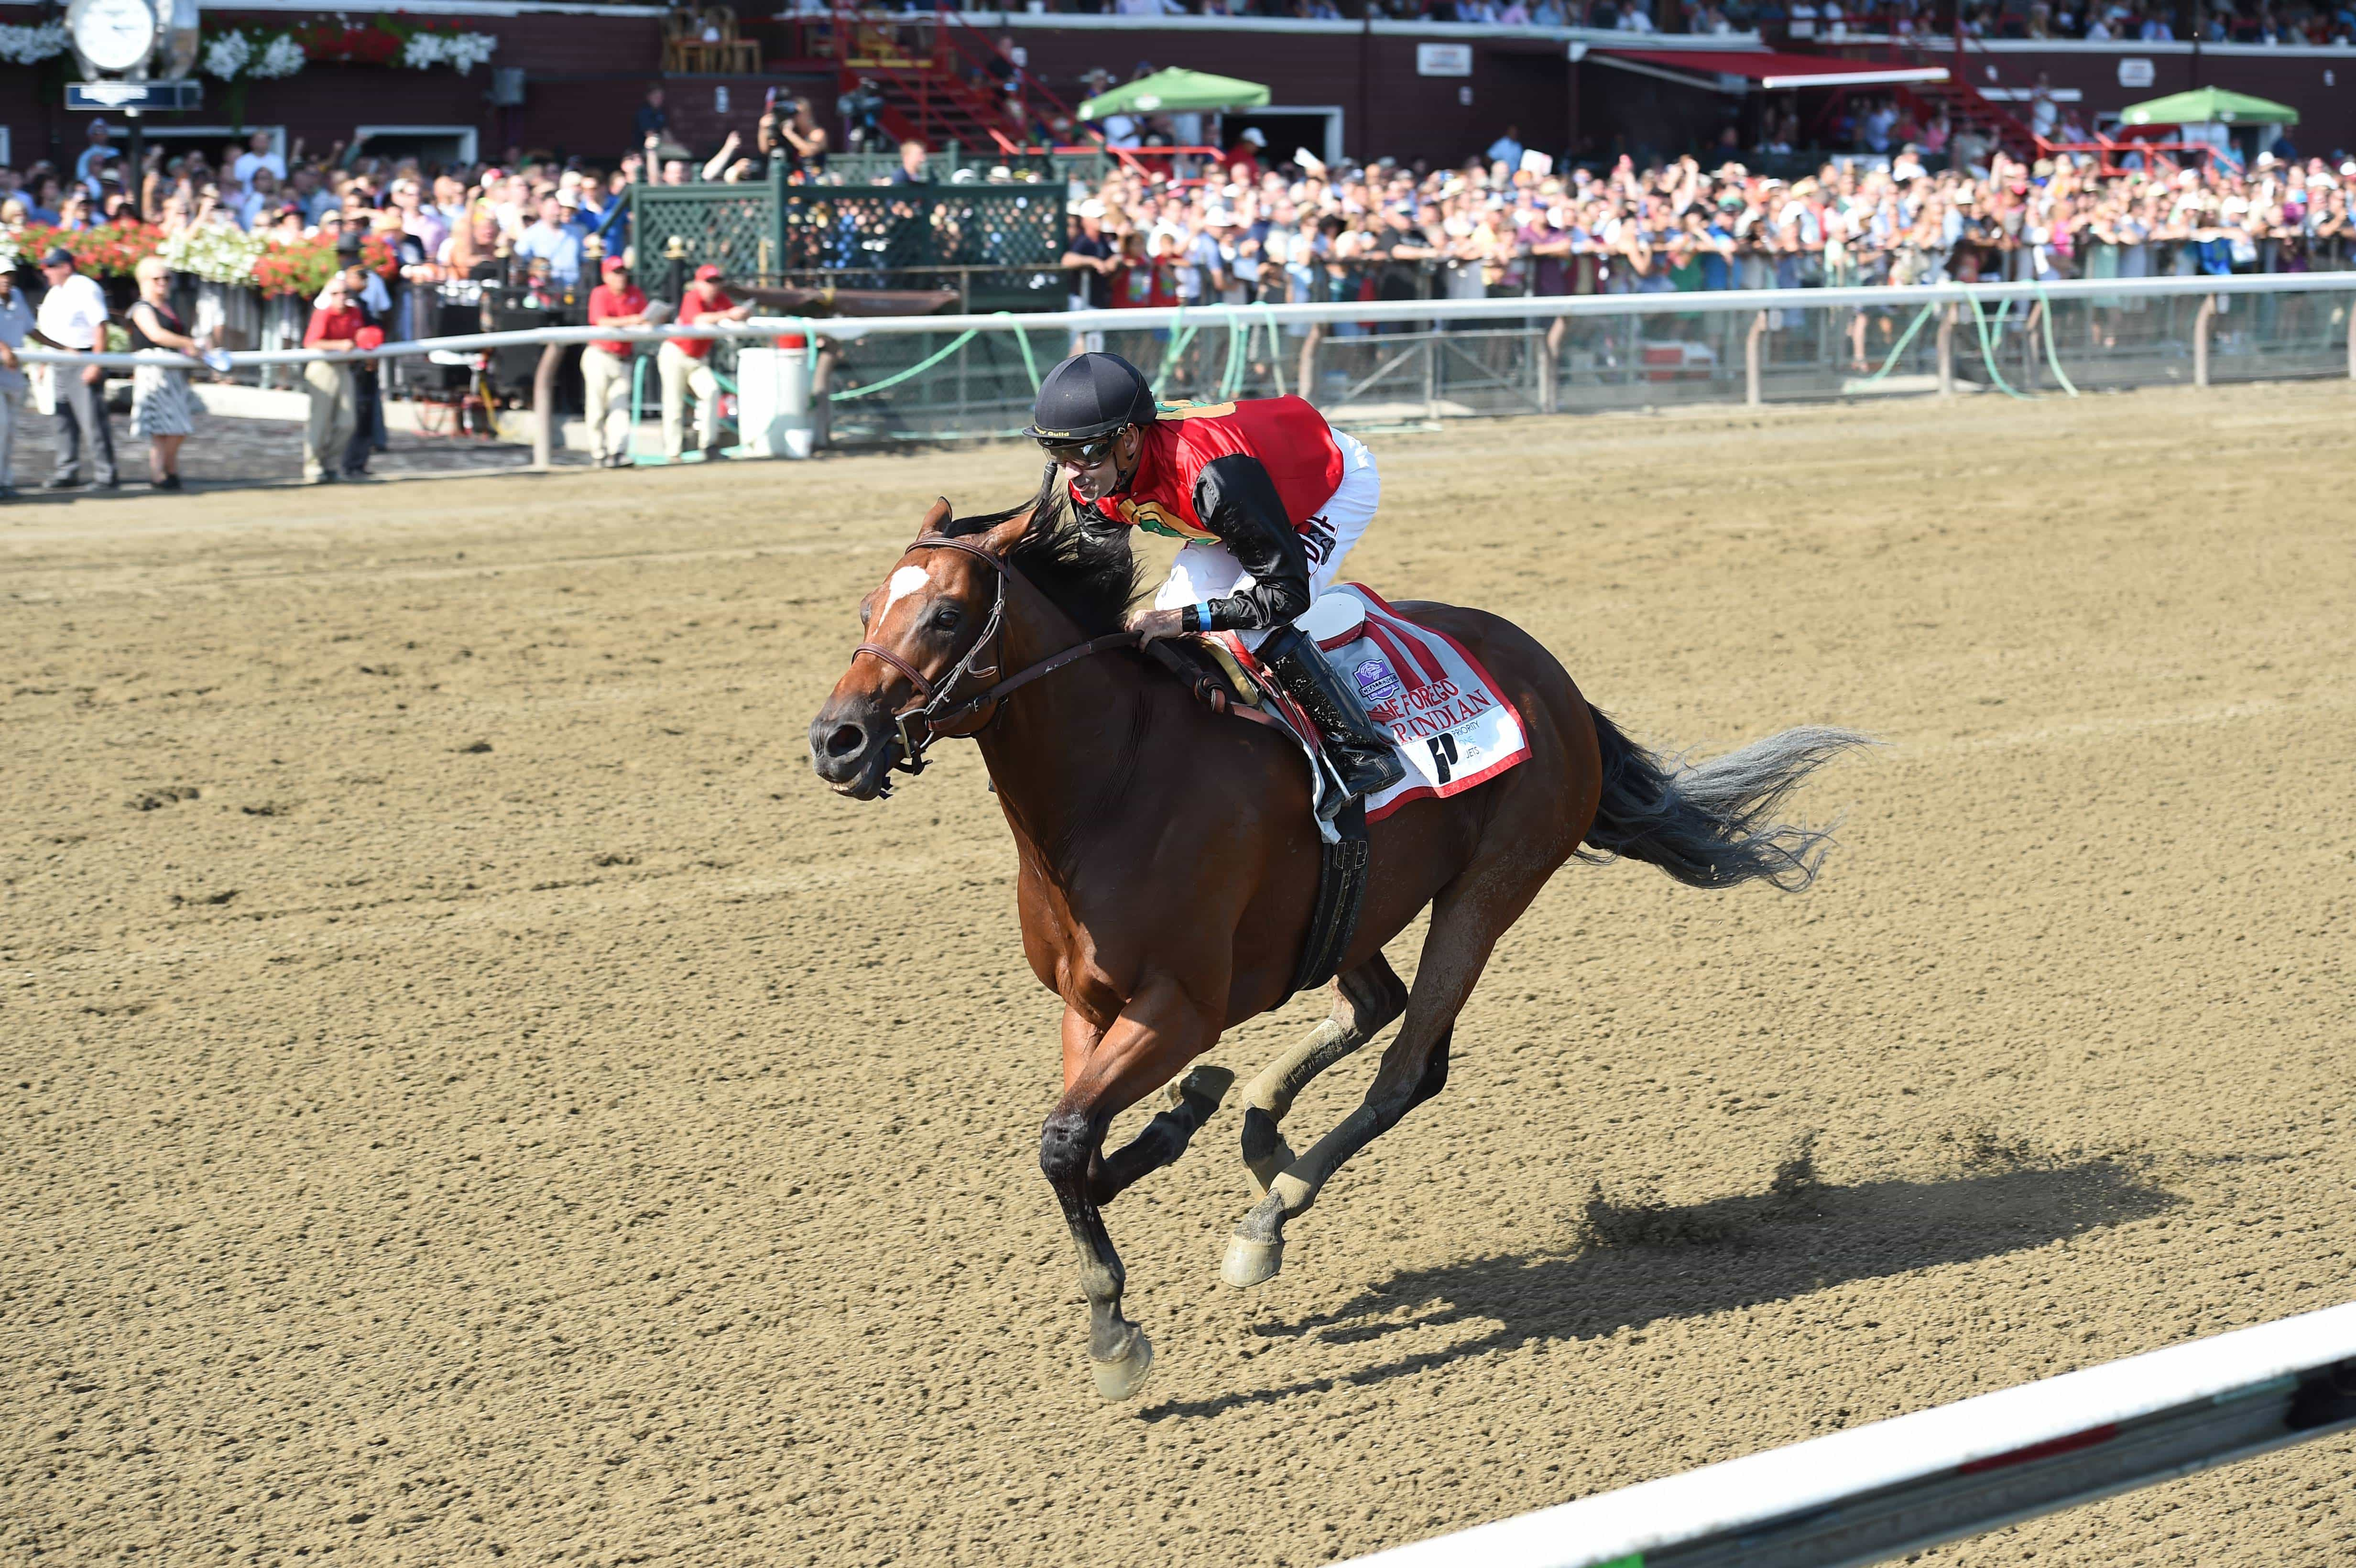 A.P. Indian wins G1 Priority One Jets Forego - Credit: Chelsea Durand/NYRA